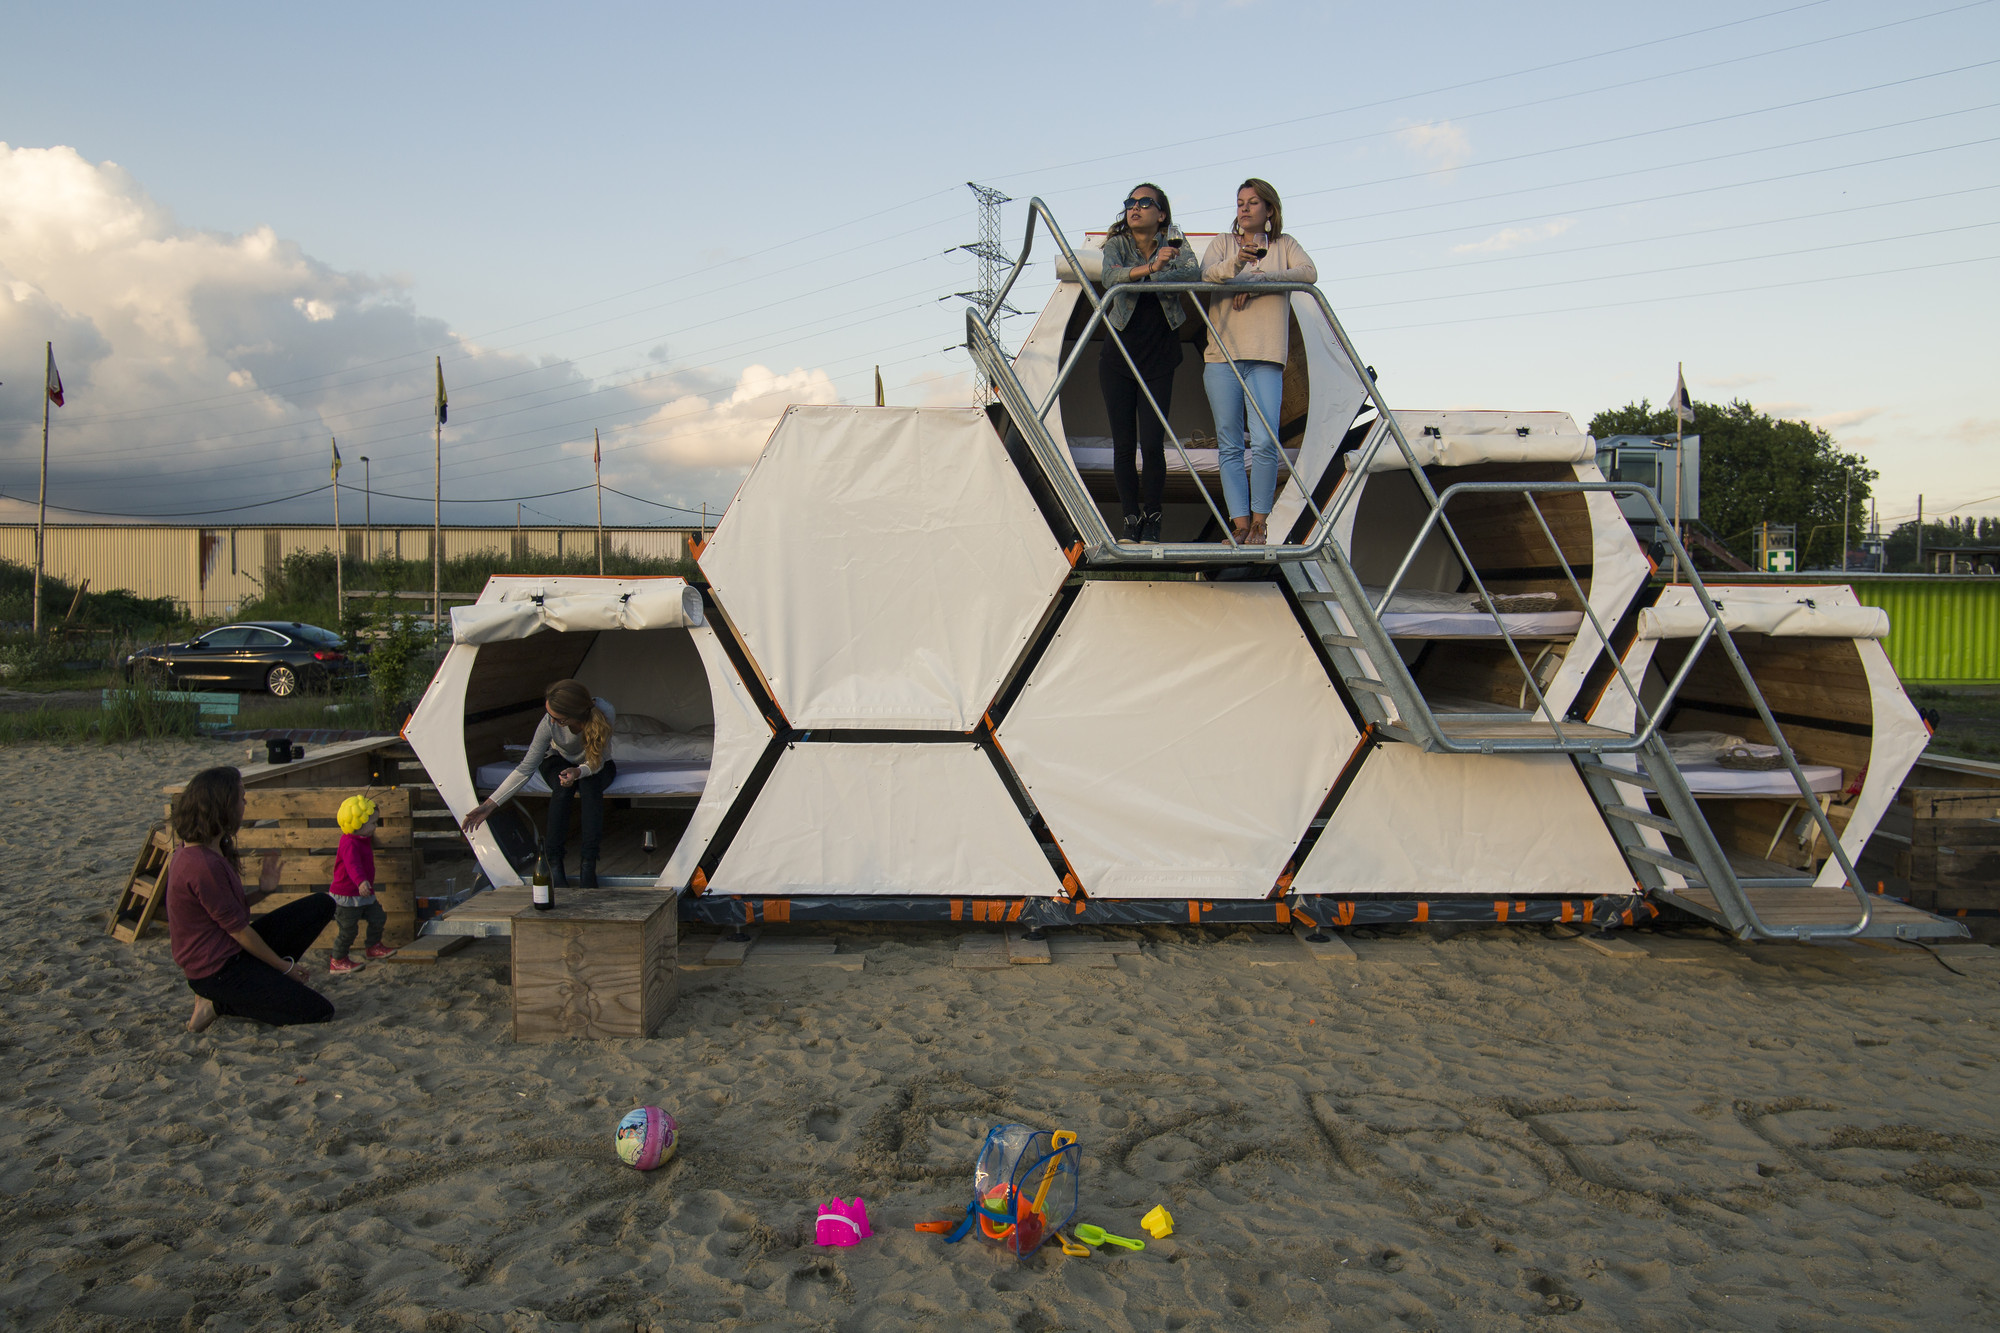 B-AND-BEE Introduces Honeycomb Campsites for Festivals, © Hannes Geipel